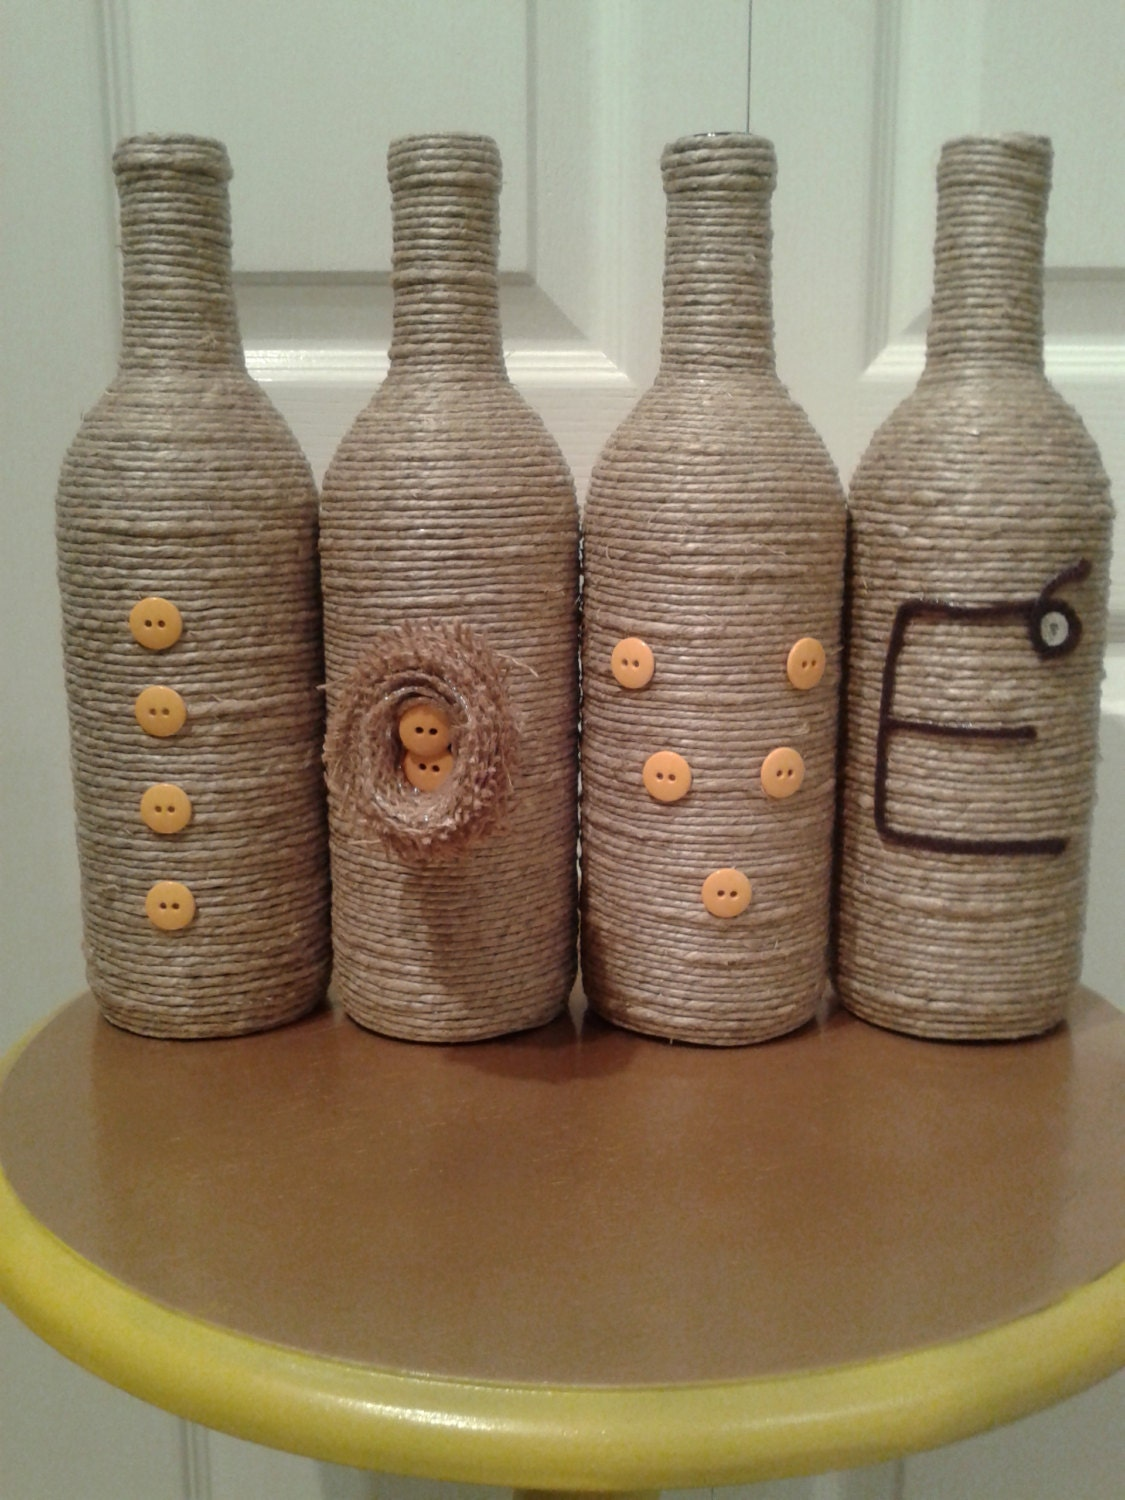 Yarn and Twine Wrapped Wine Bottles Mother's Day Gift |Twine Covered Wine Bottles